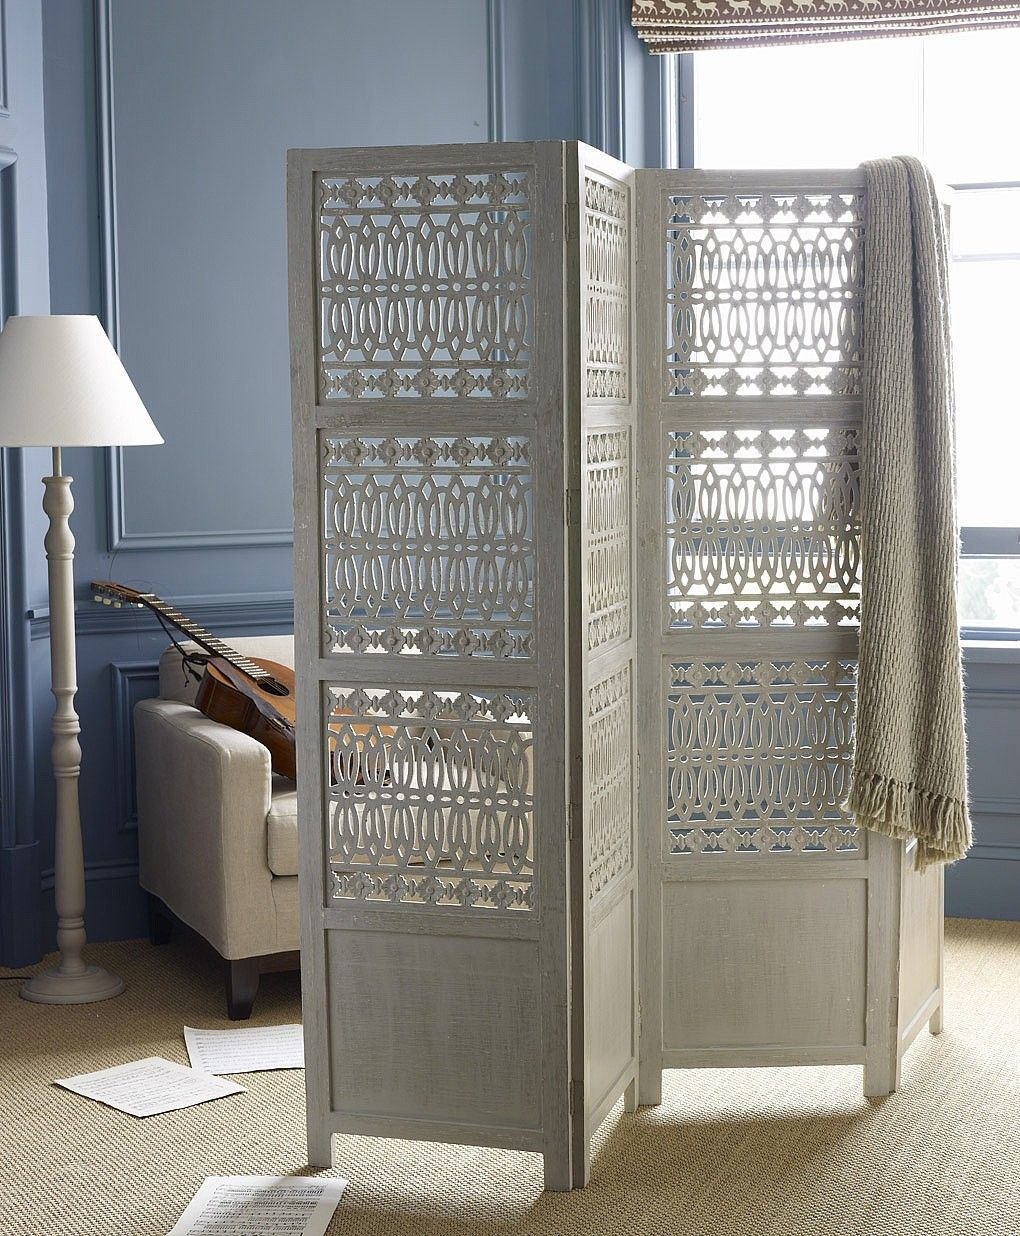 Another Folding Screen Room Screen Room Room Divider Screen